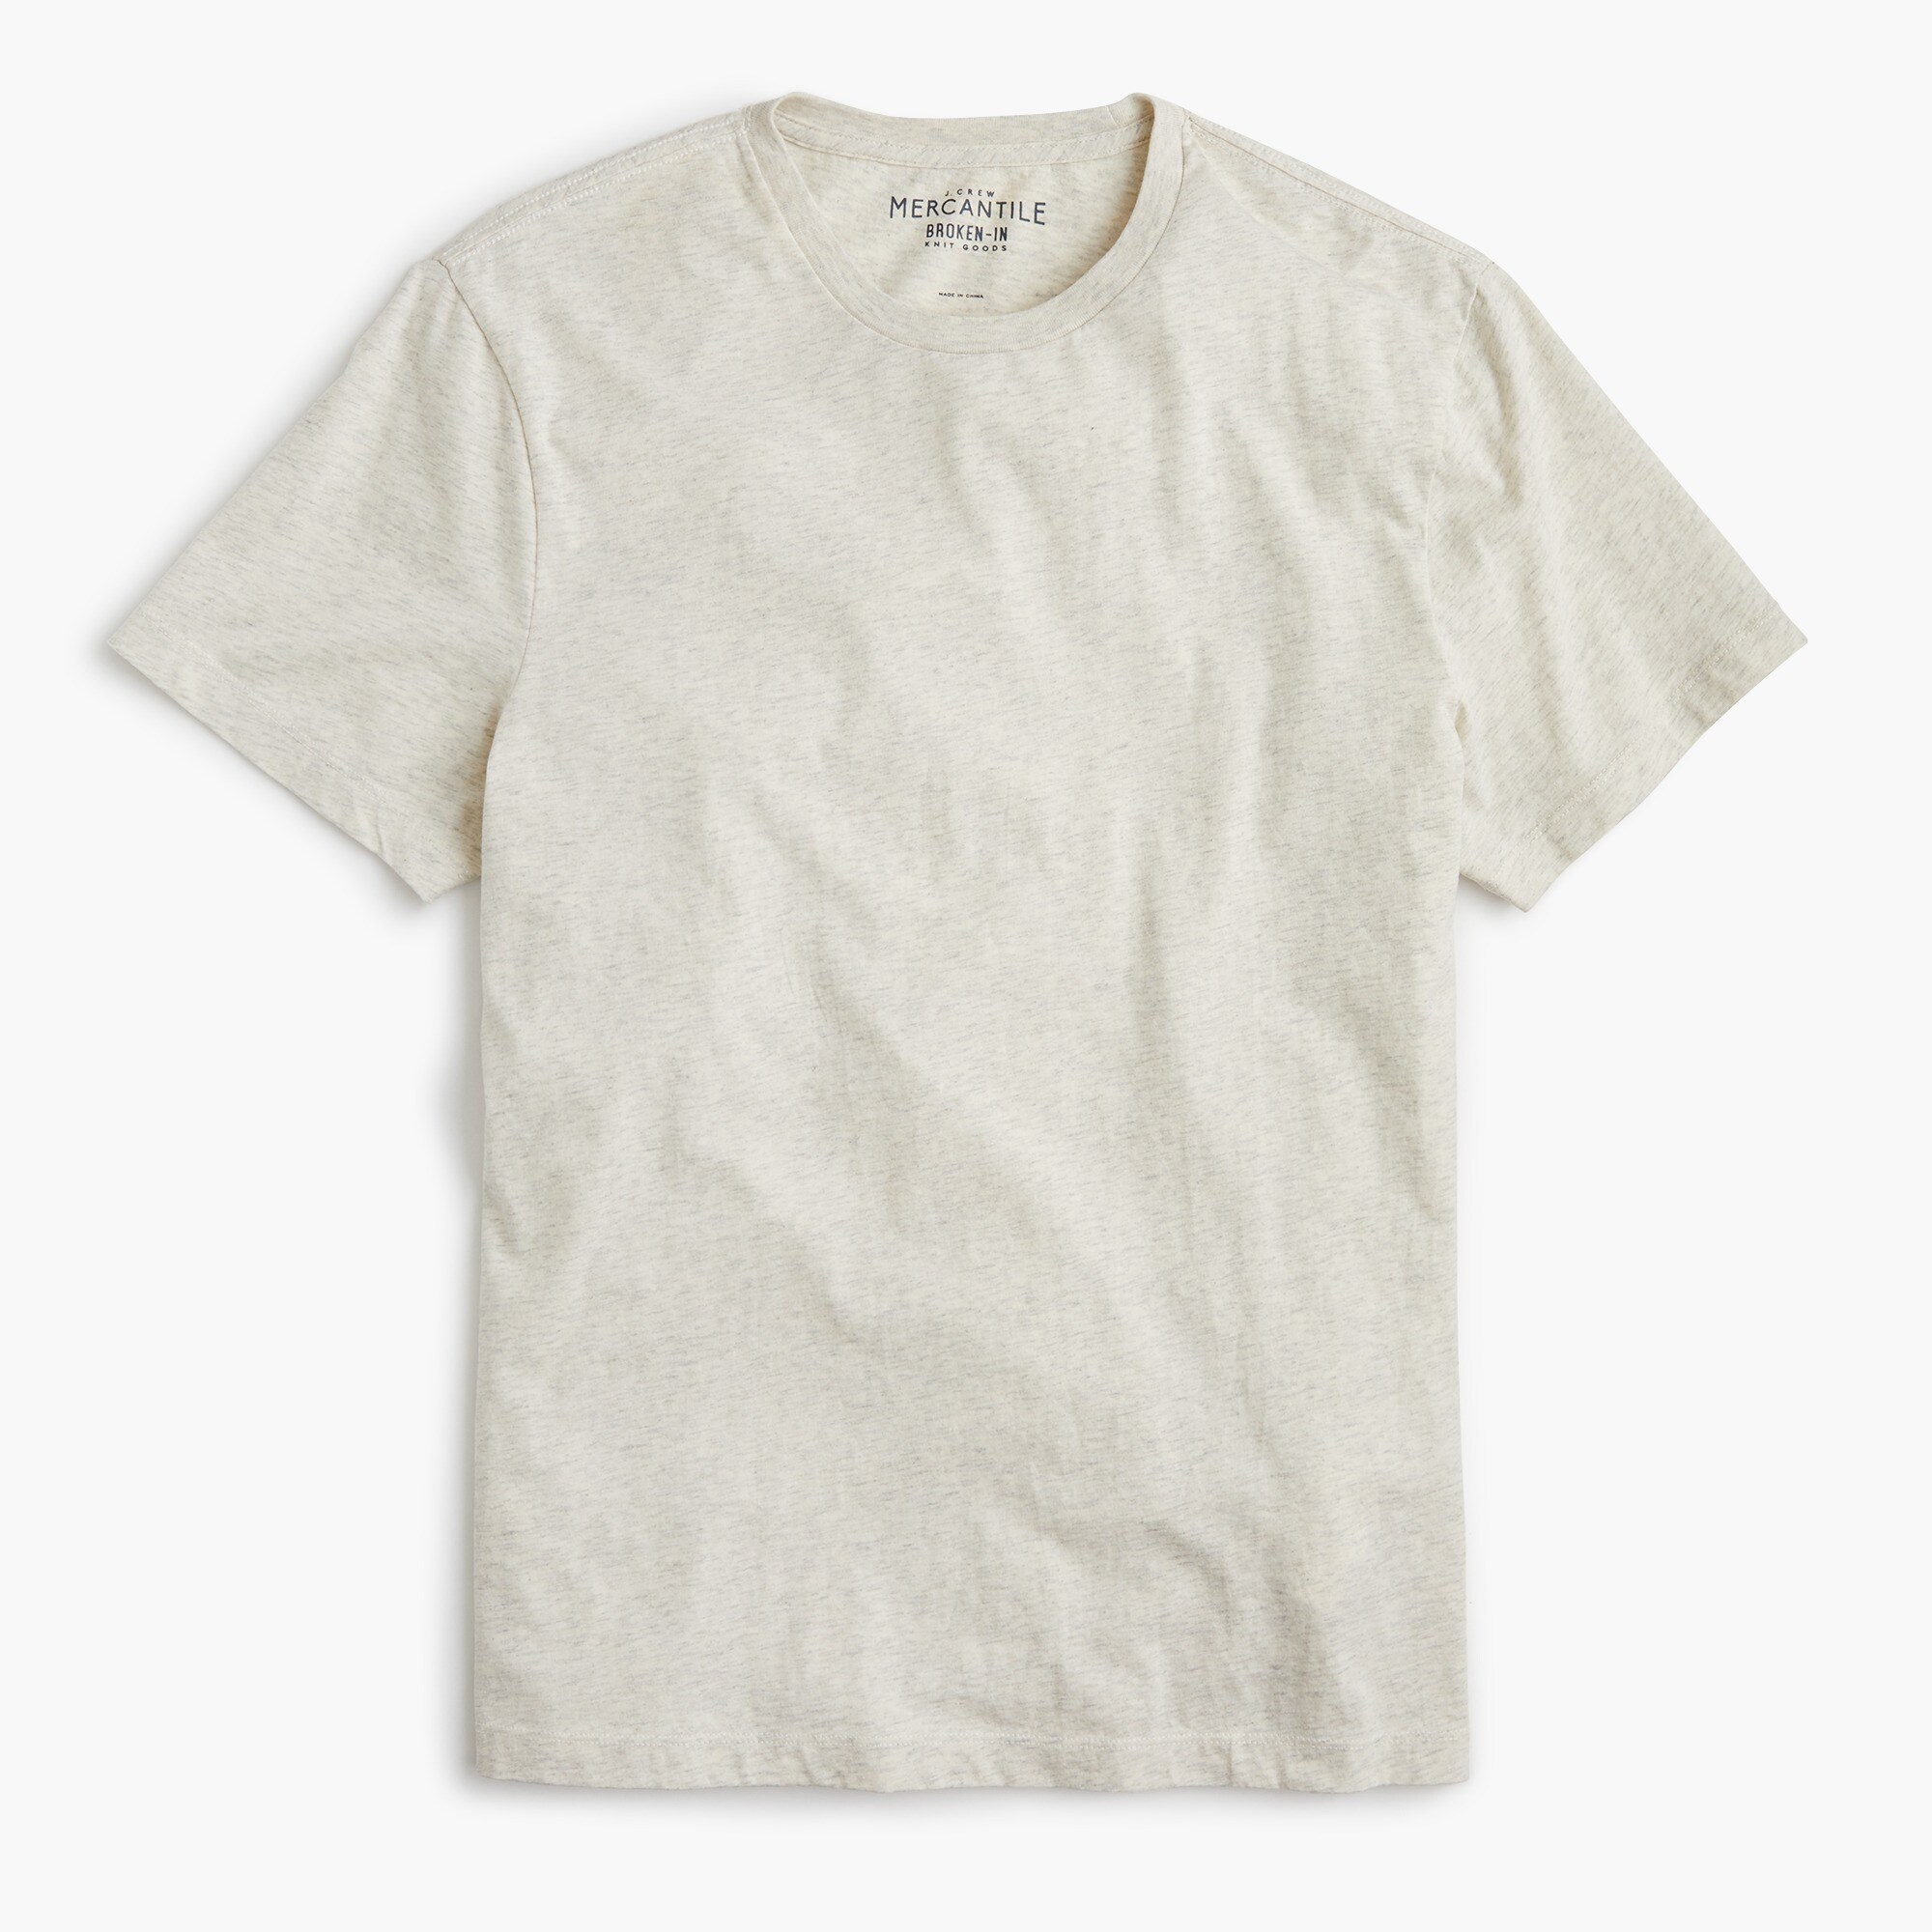 Slim J.Crew Mercantile Broken-in heather T-shirt